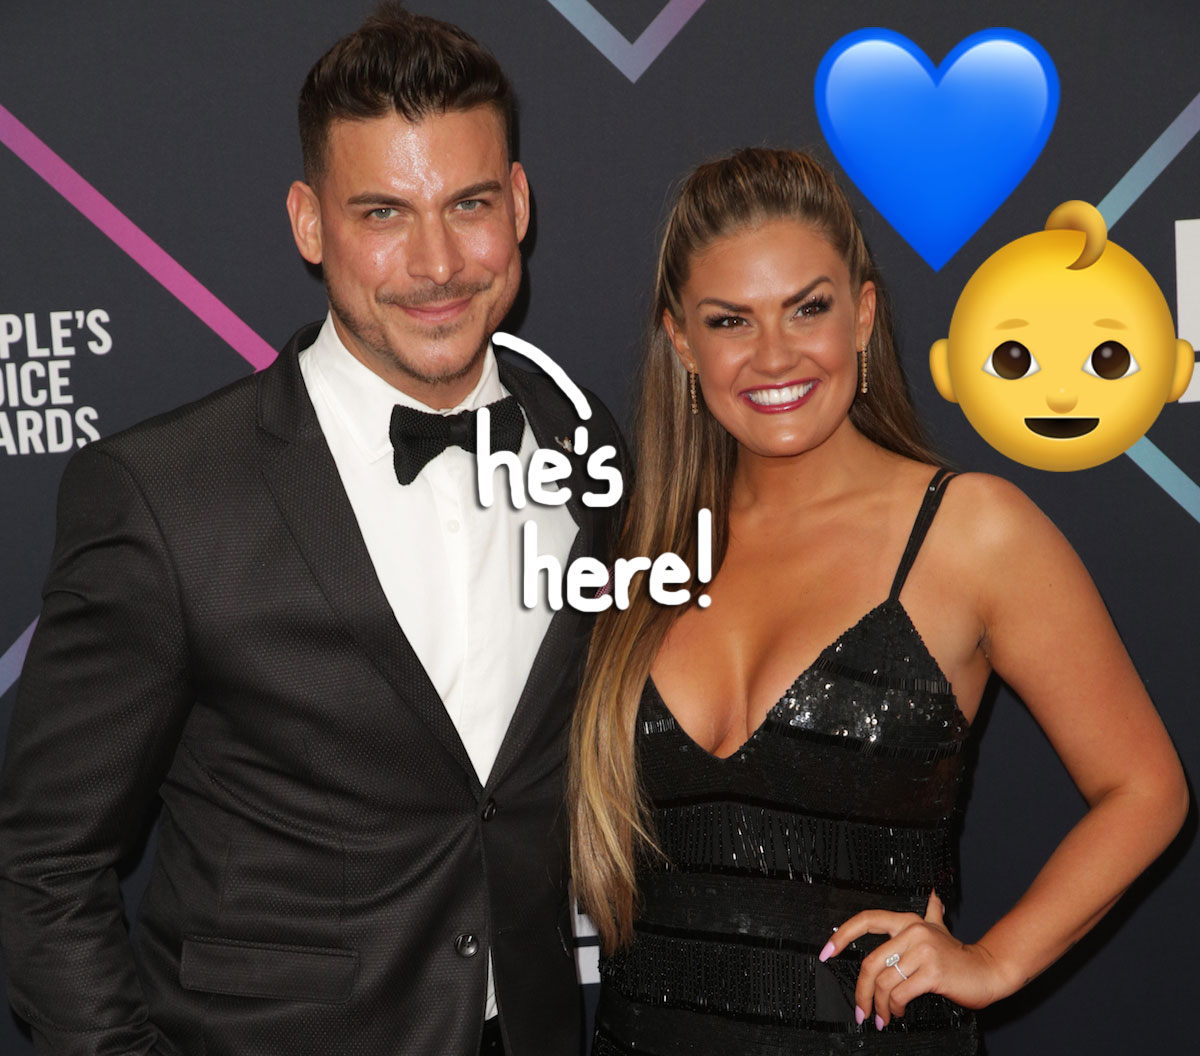 Brittany Cartwright & Jax Taylor Just Welcomed Their Baby Boy — Deets!